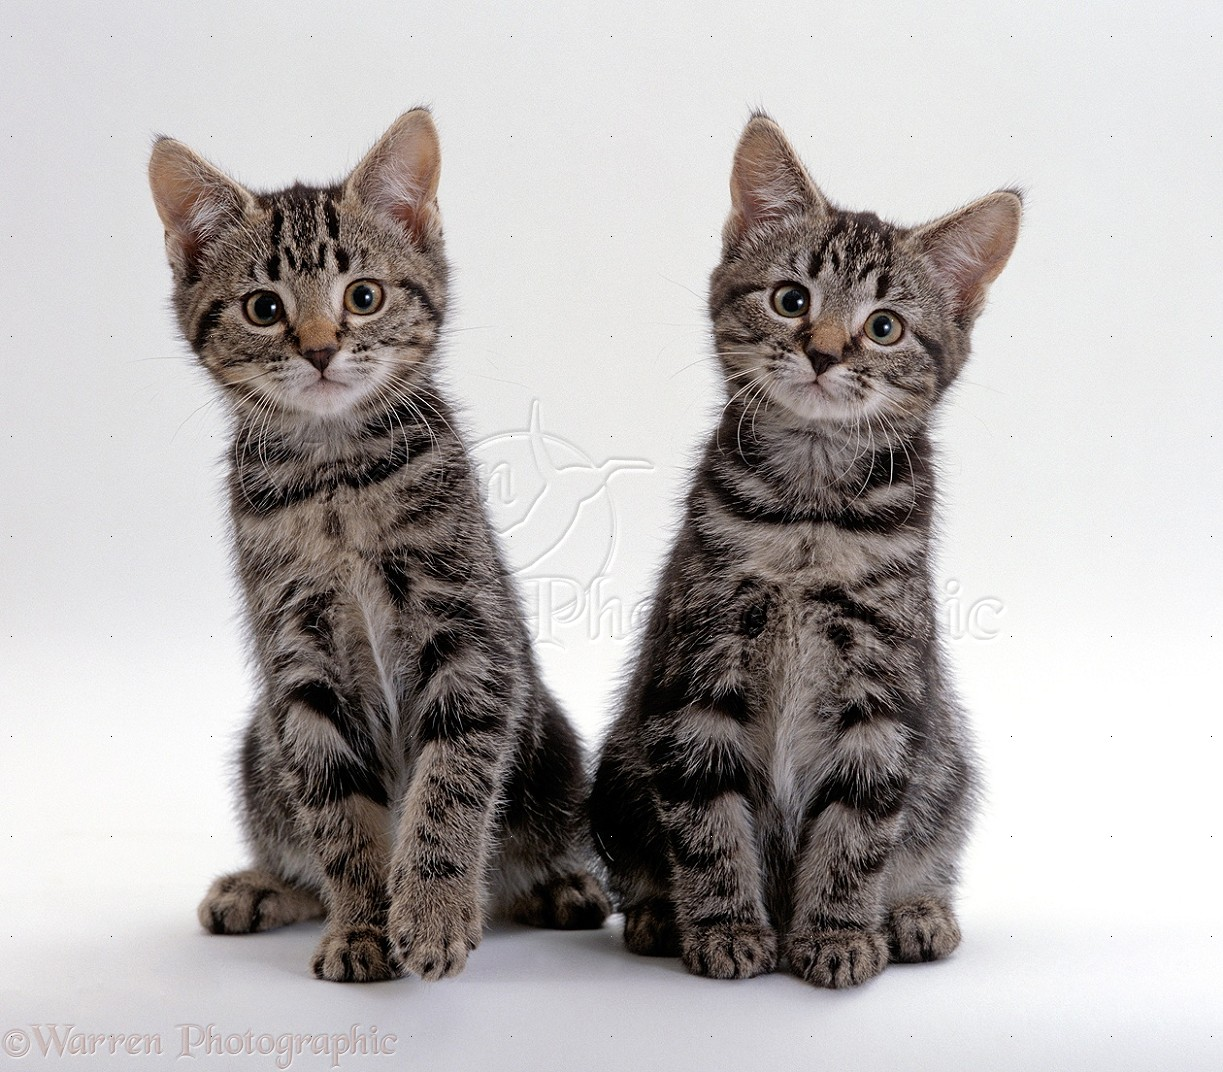 Two tabby kittens photo WP15506